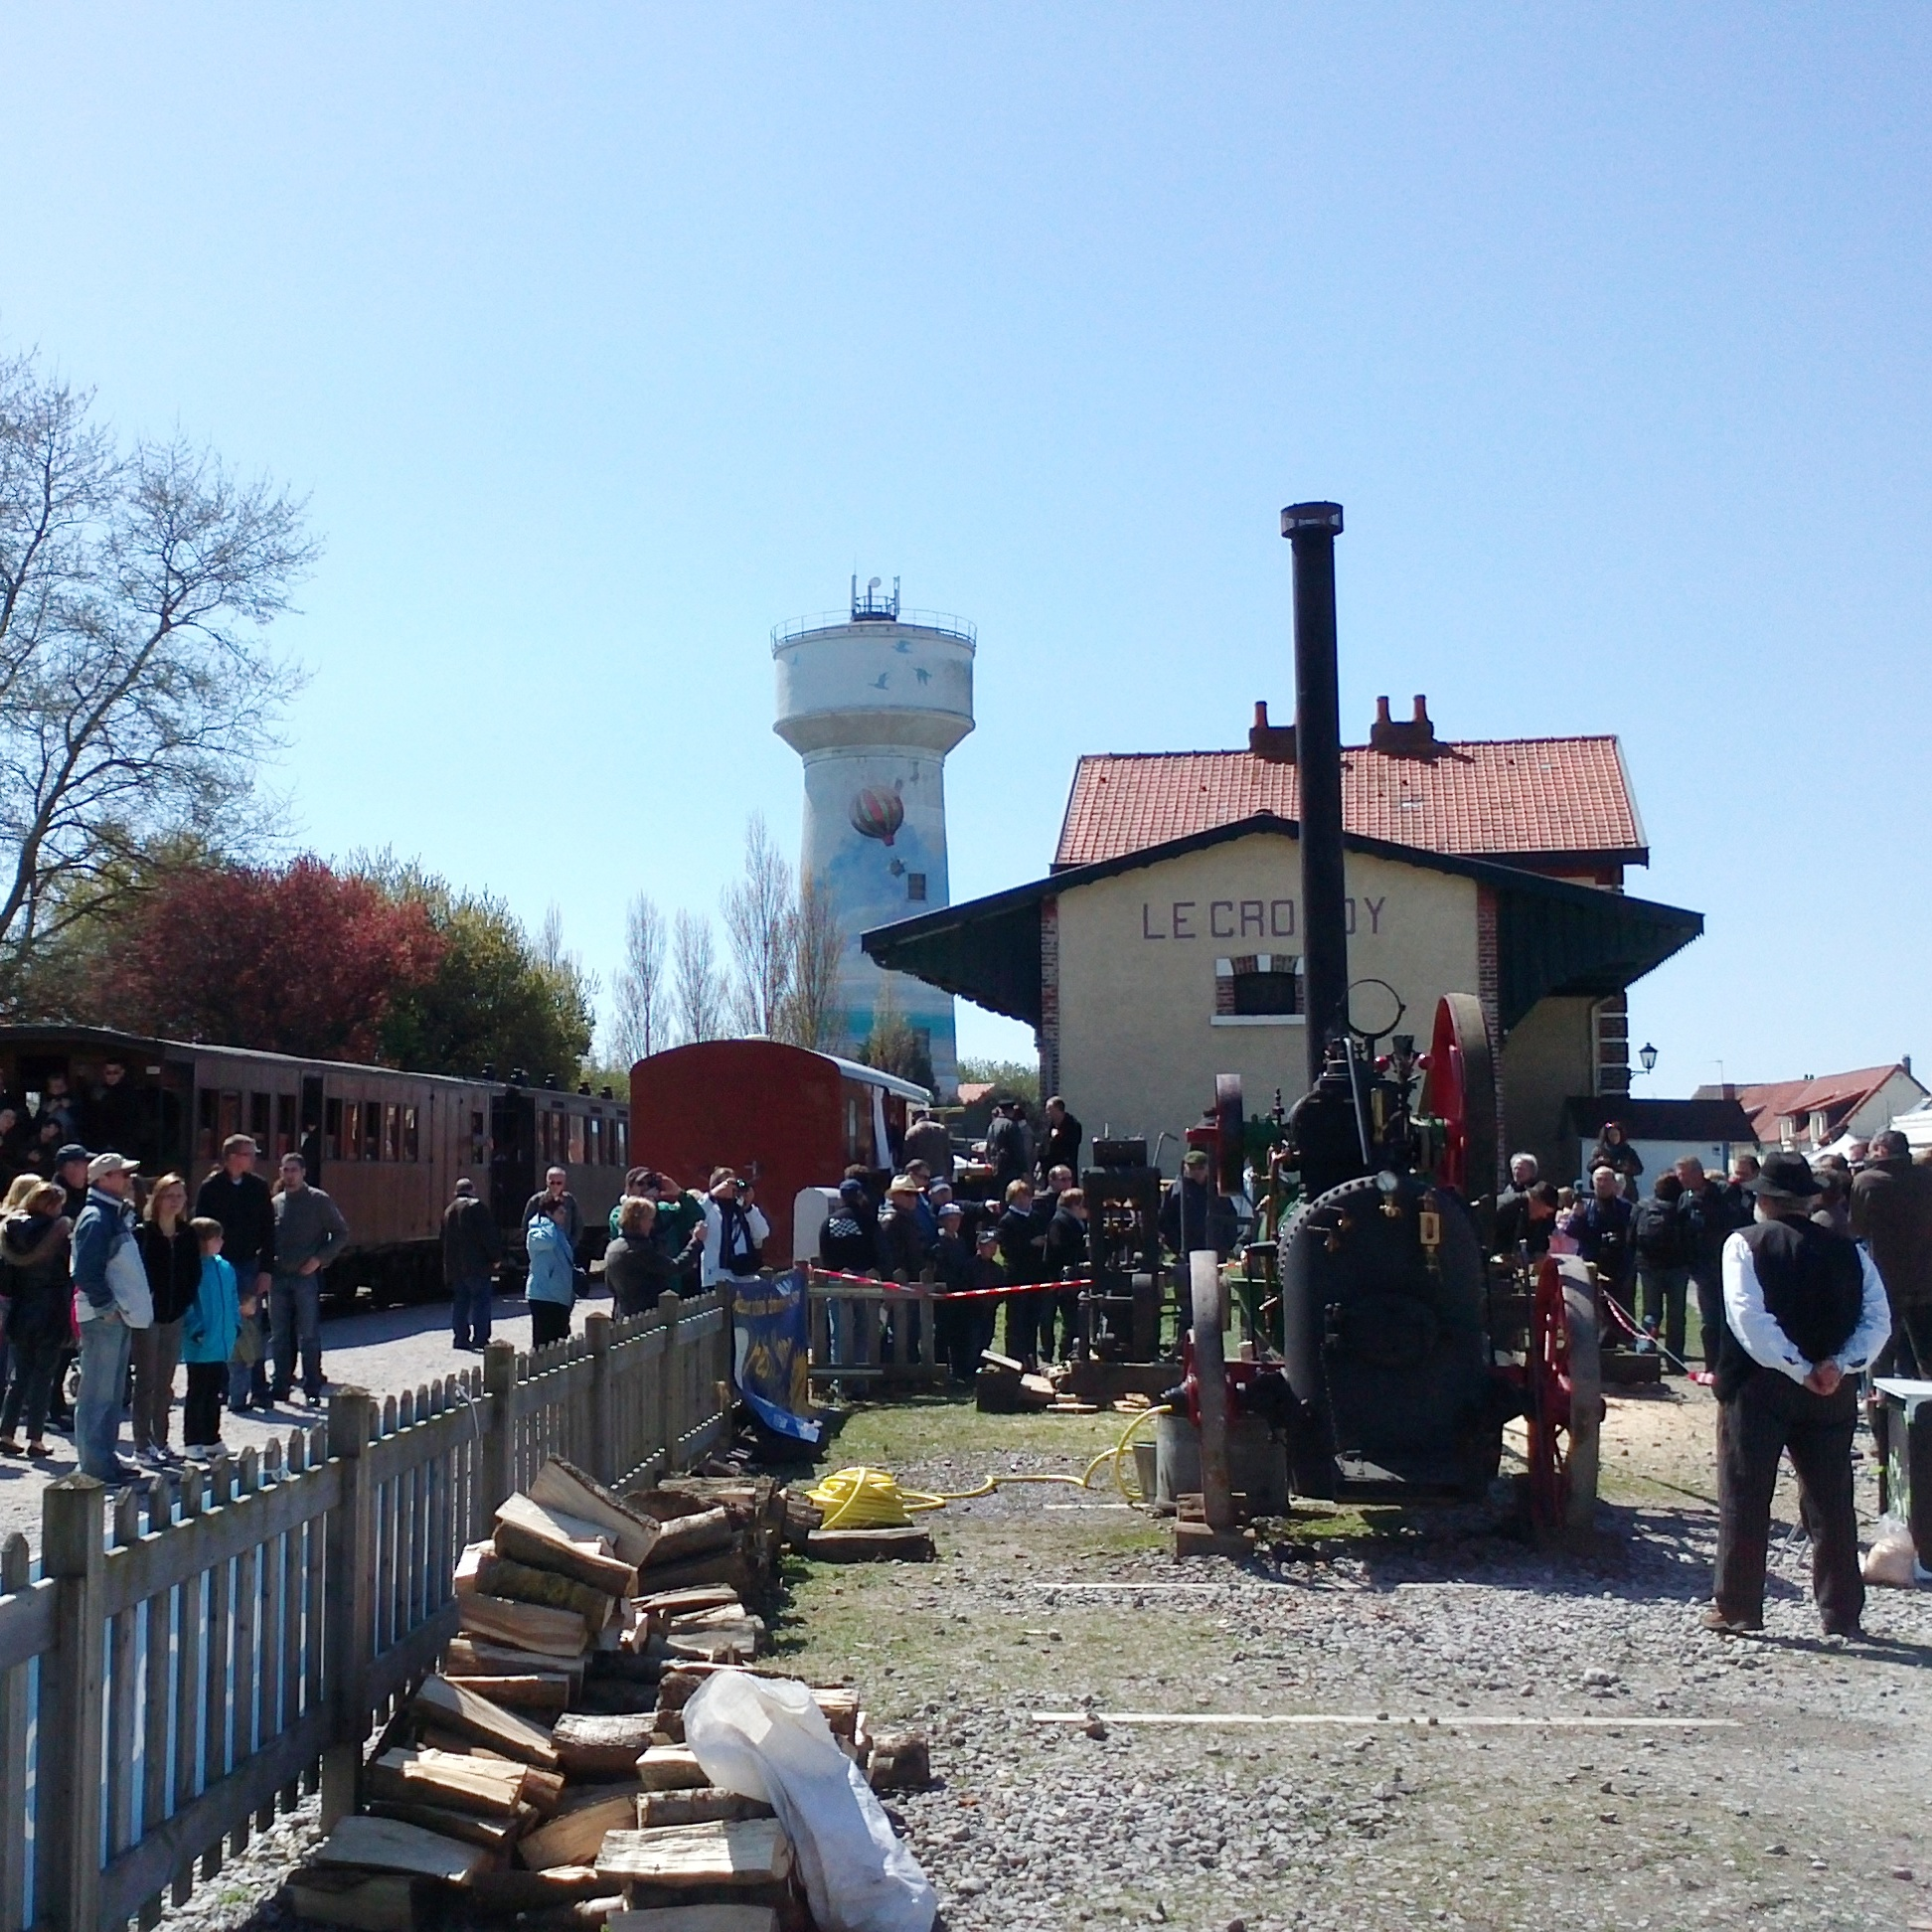 Festival of Steam, Le Crotoy, 2013